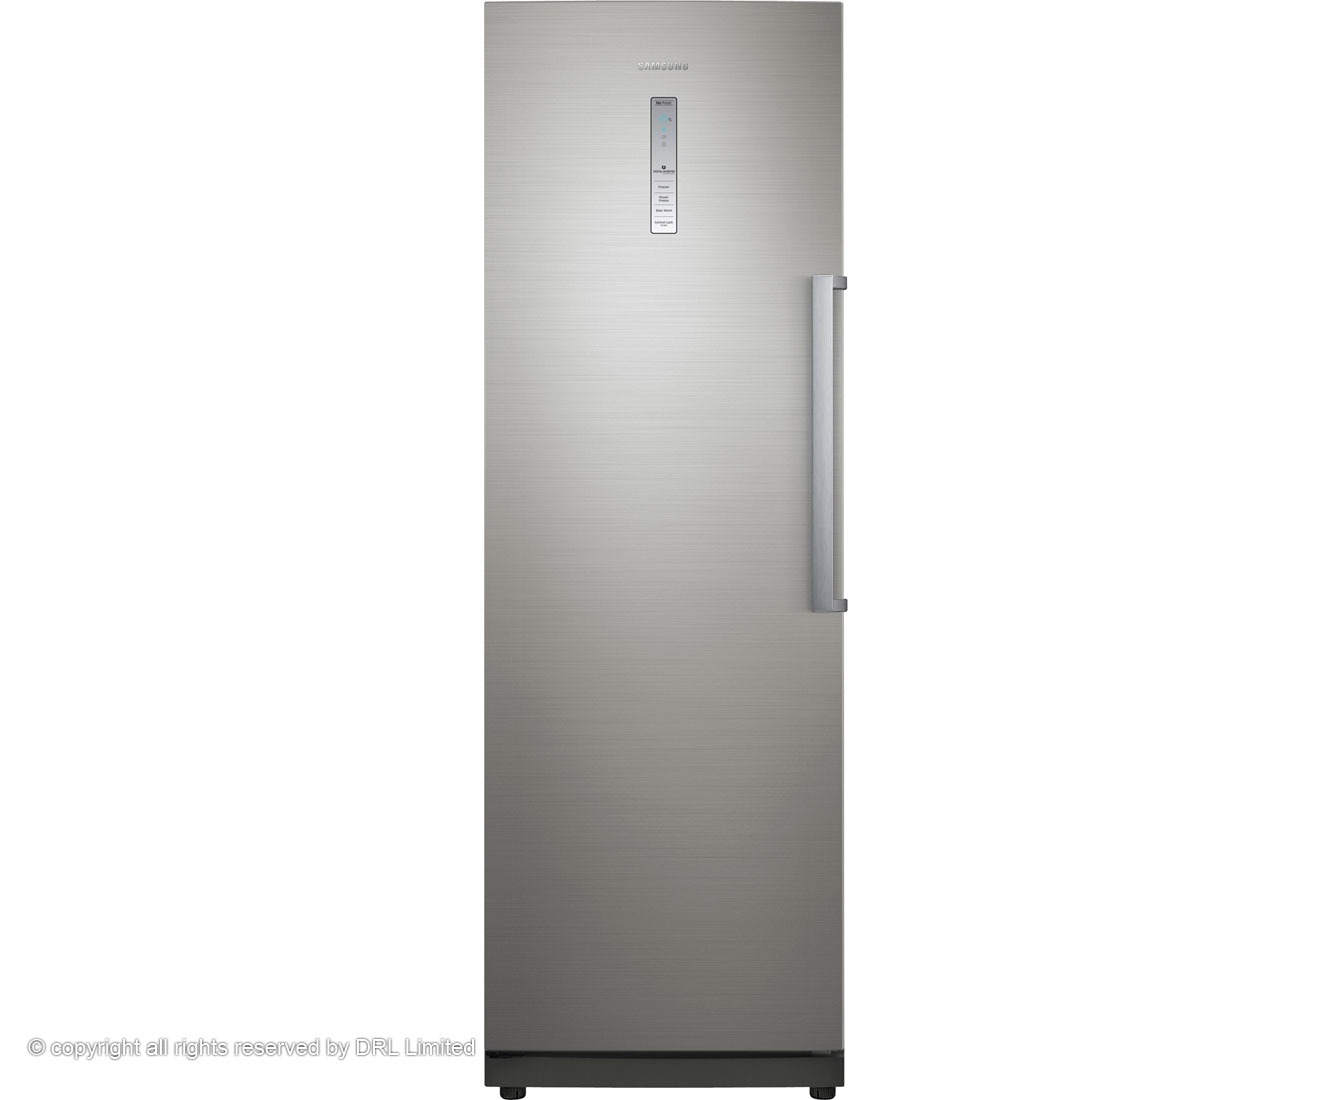 Samsung RZ28H61507F Upright Freezer - Steel